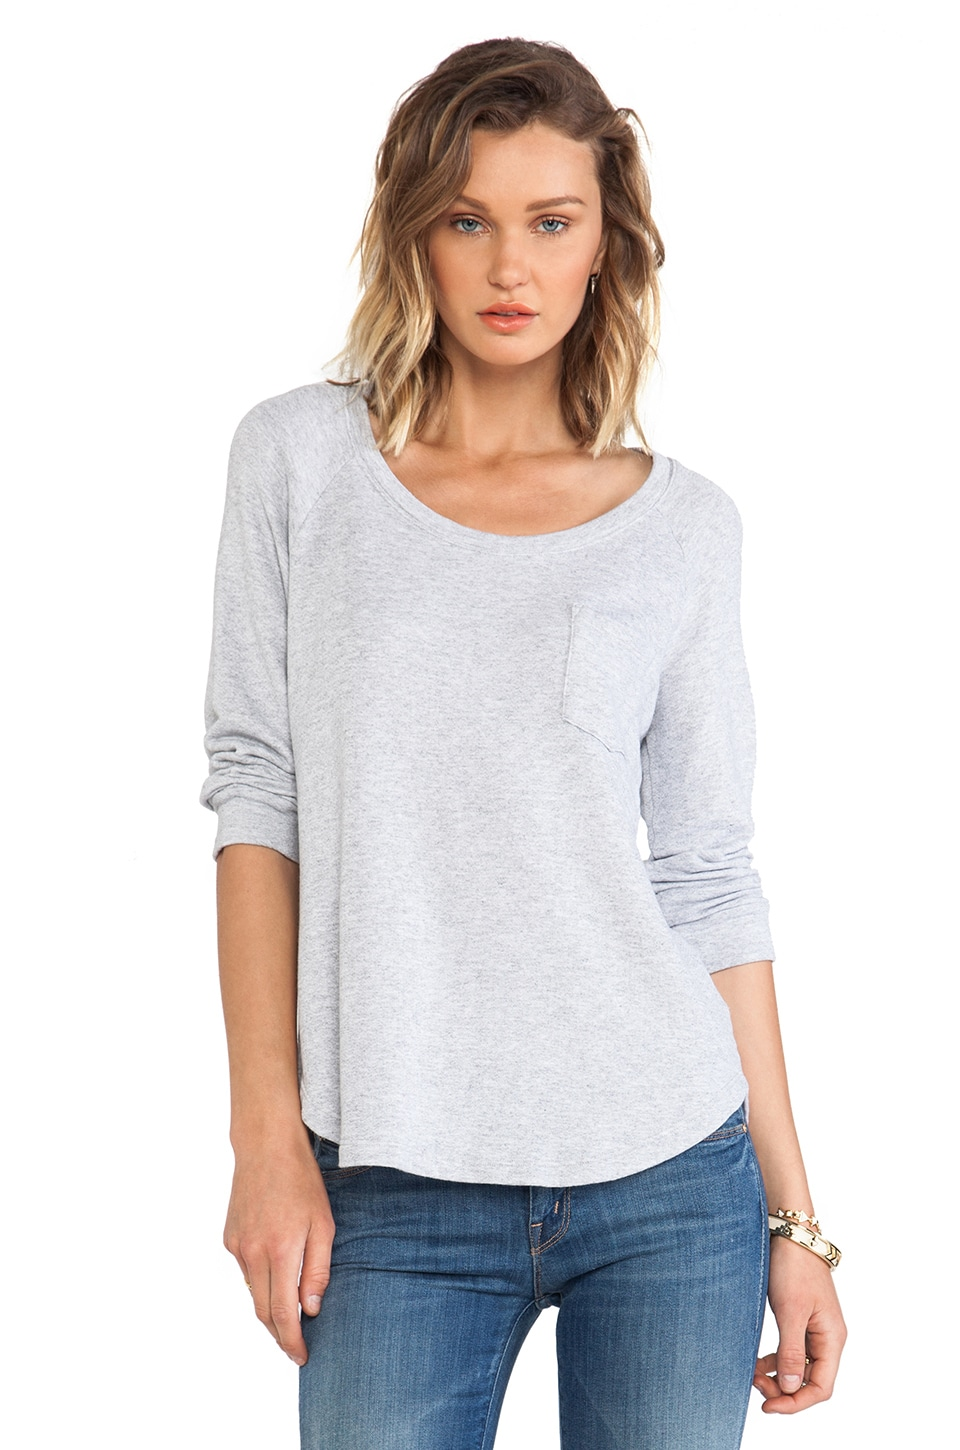 Splendid Soft Melange French Terry Top in Heather Grey